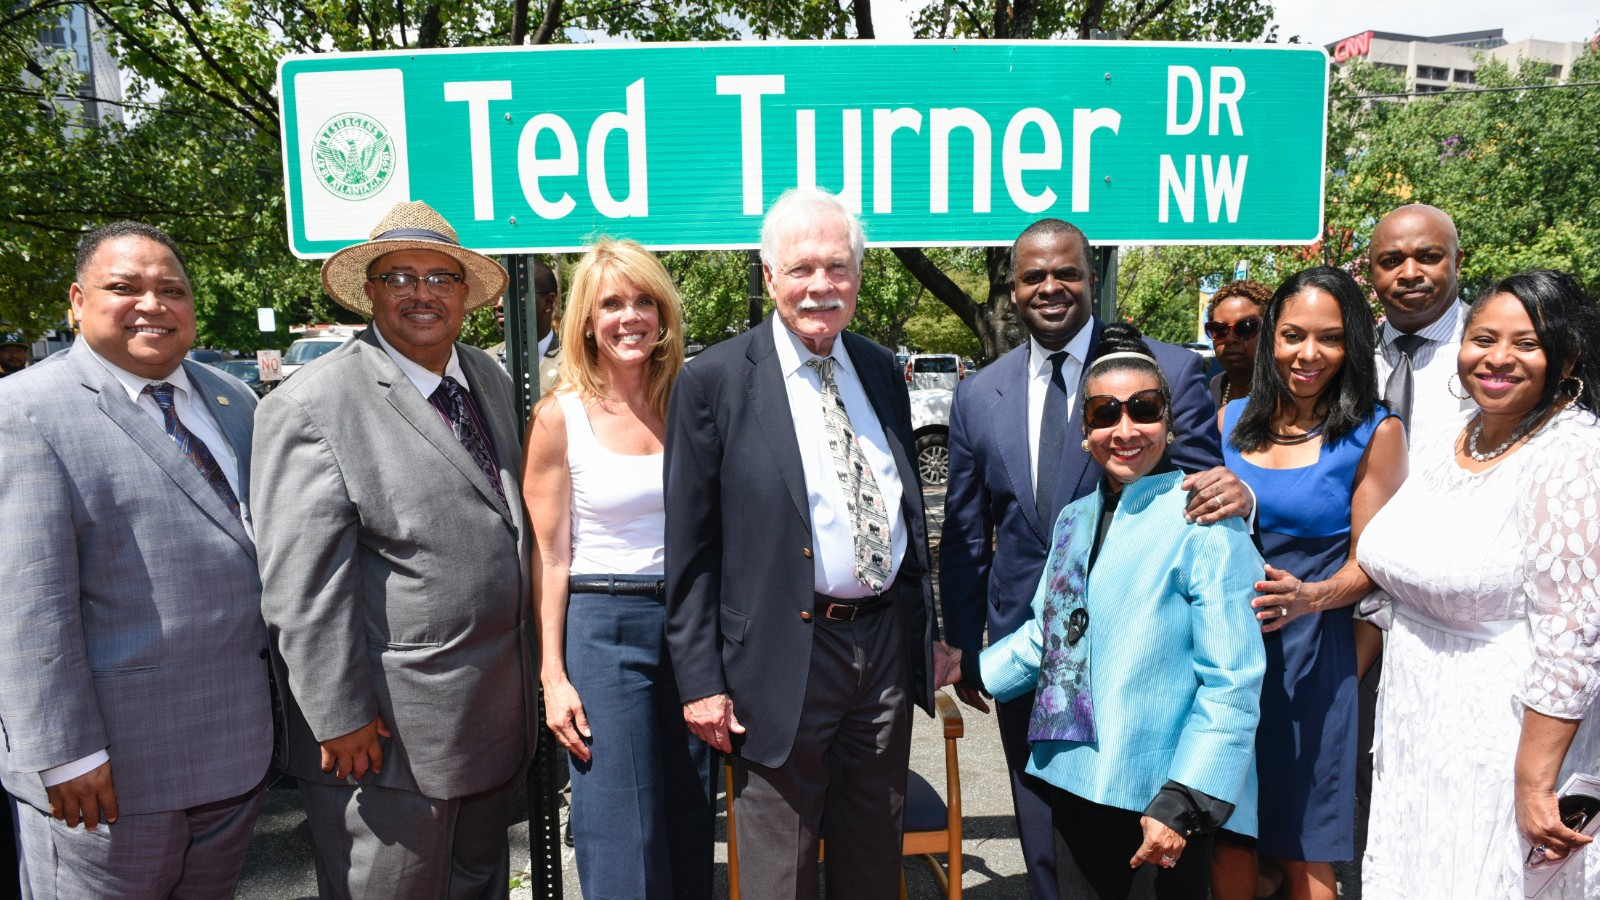 Ted Turner Fast Facts Cnn